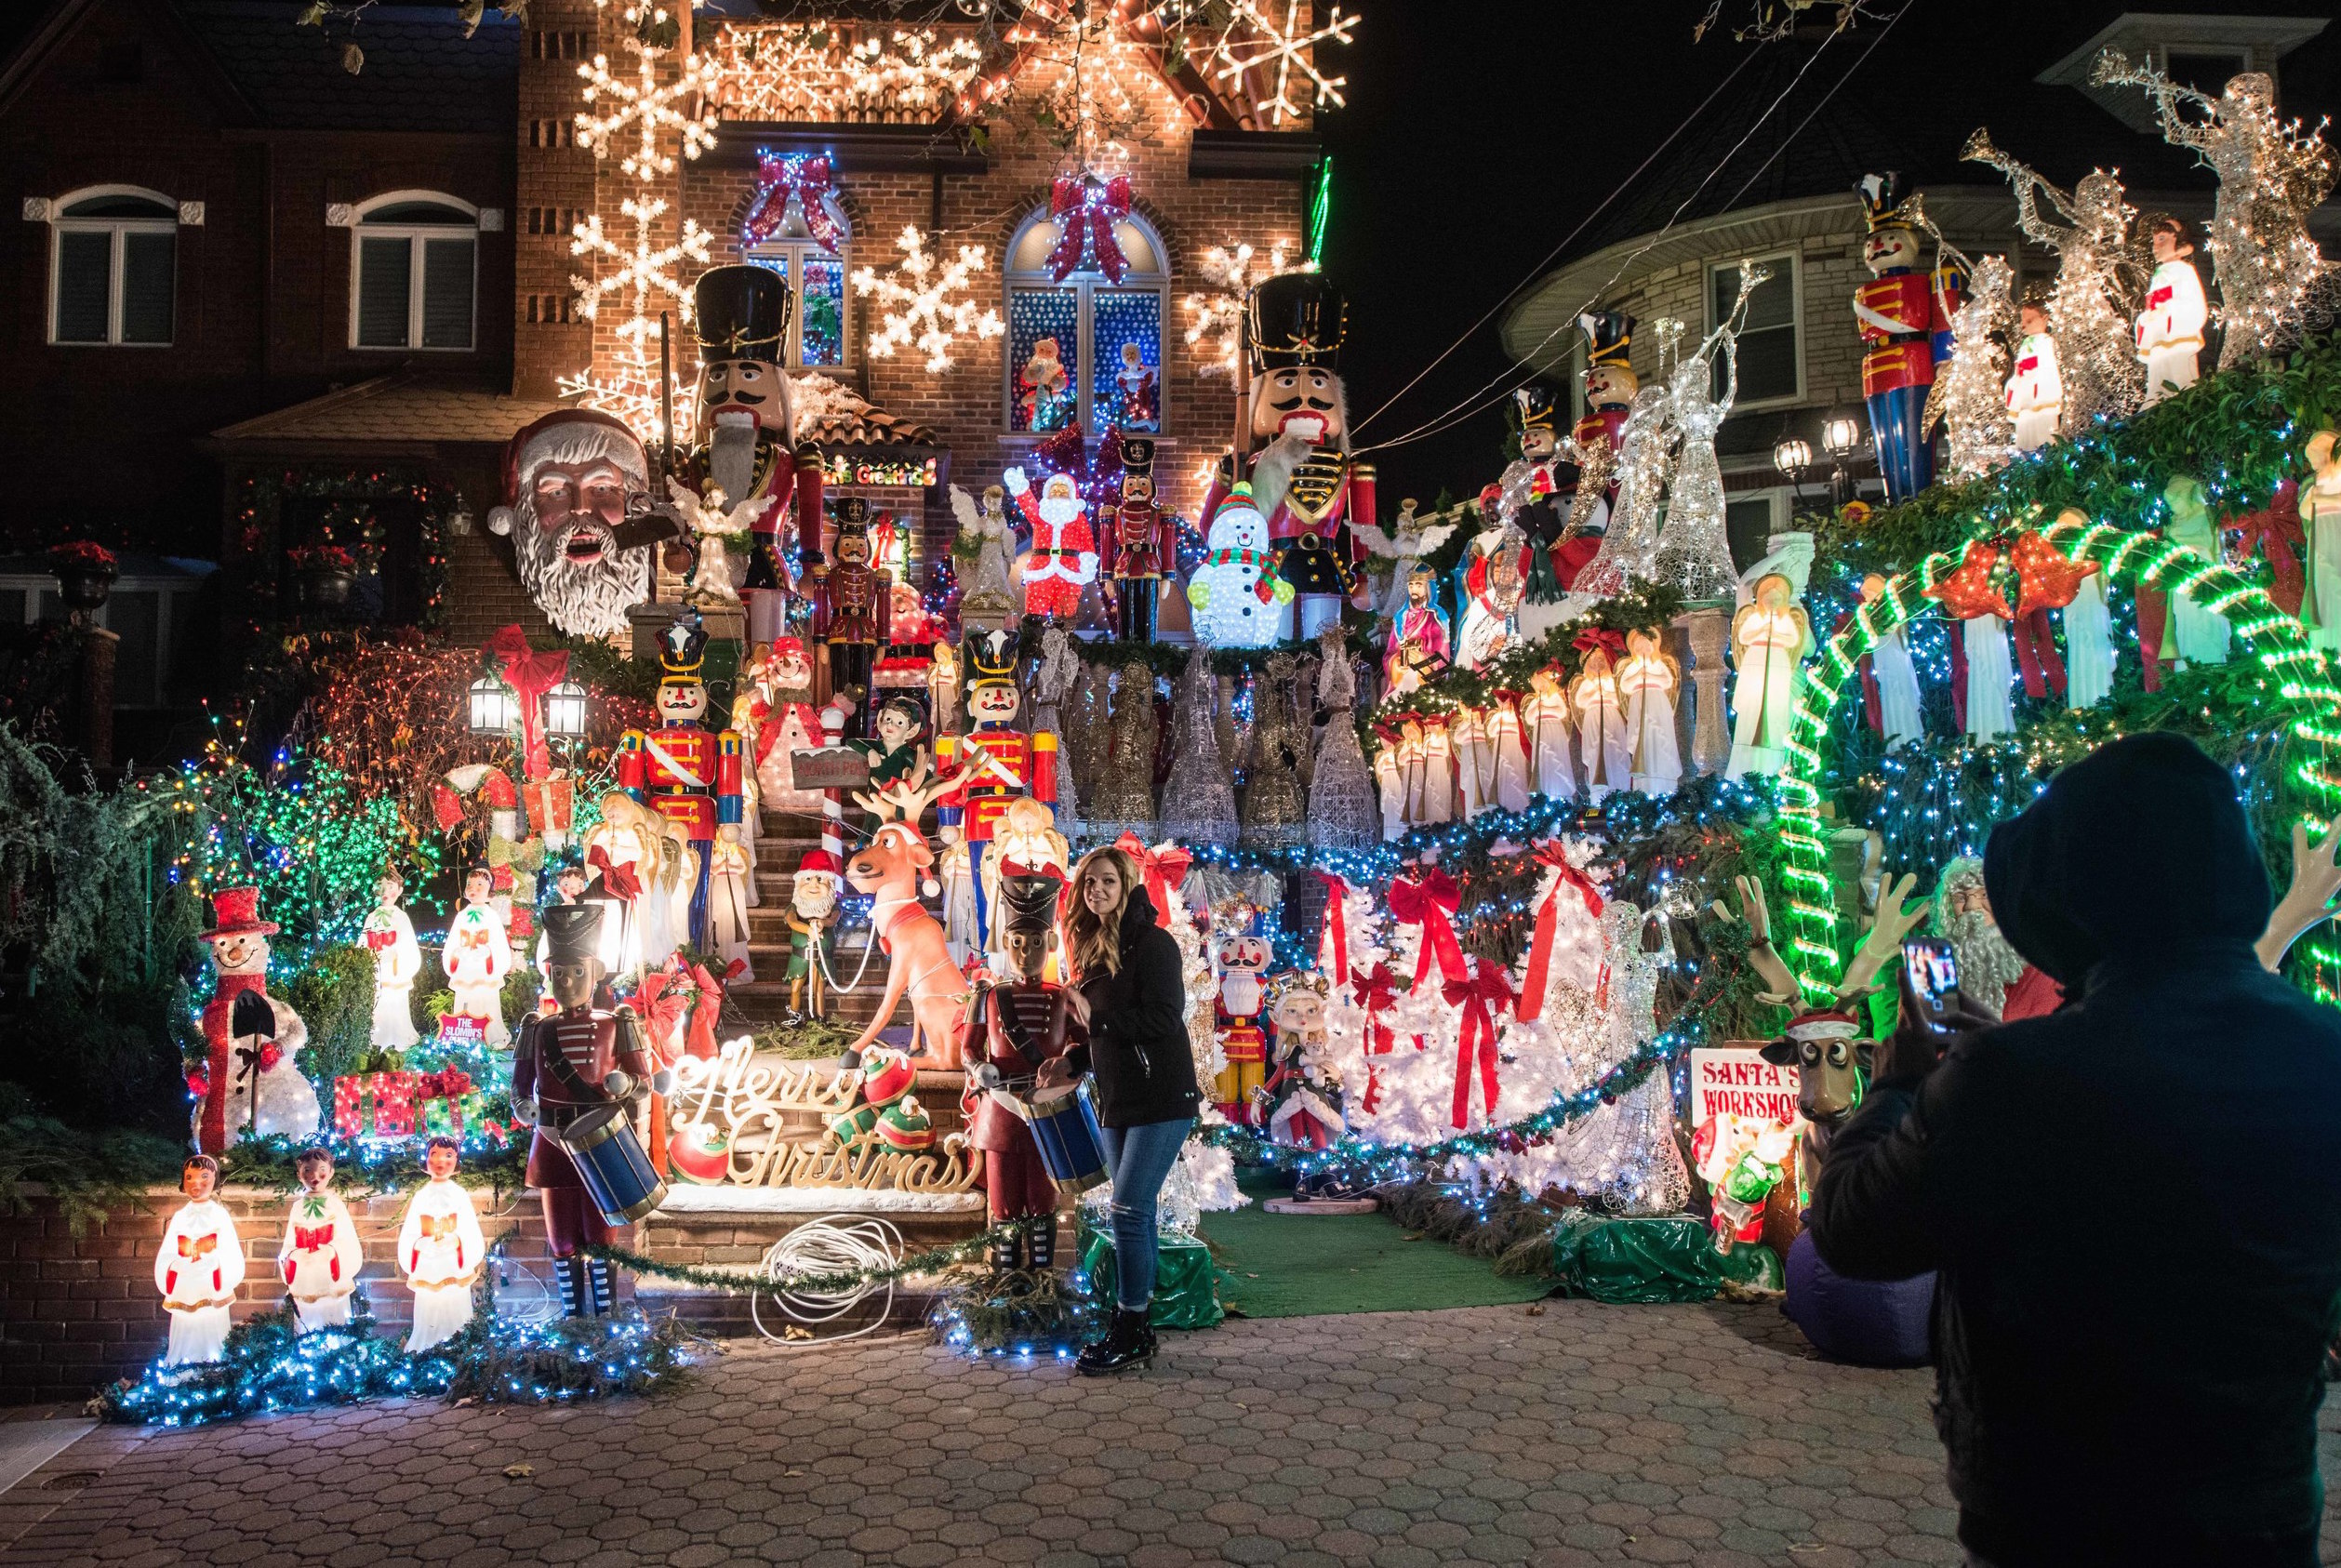 Dyker Heights Christmas Lights 2019 Guide With Great Tours